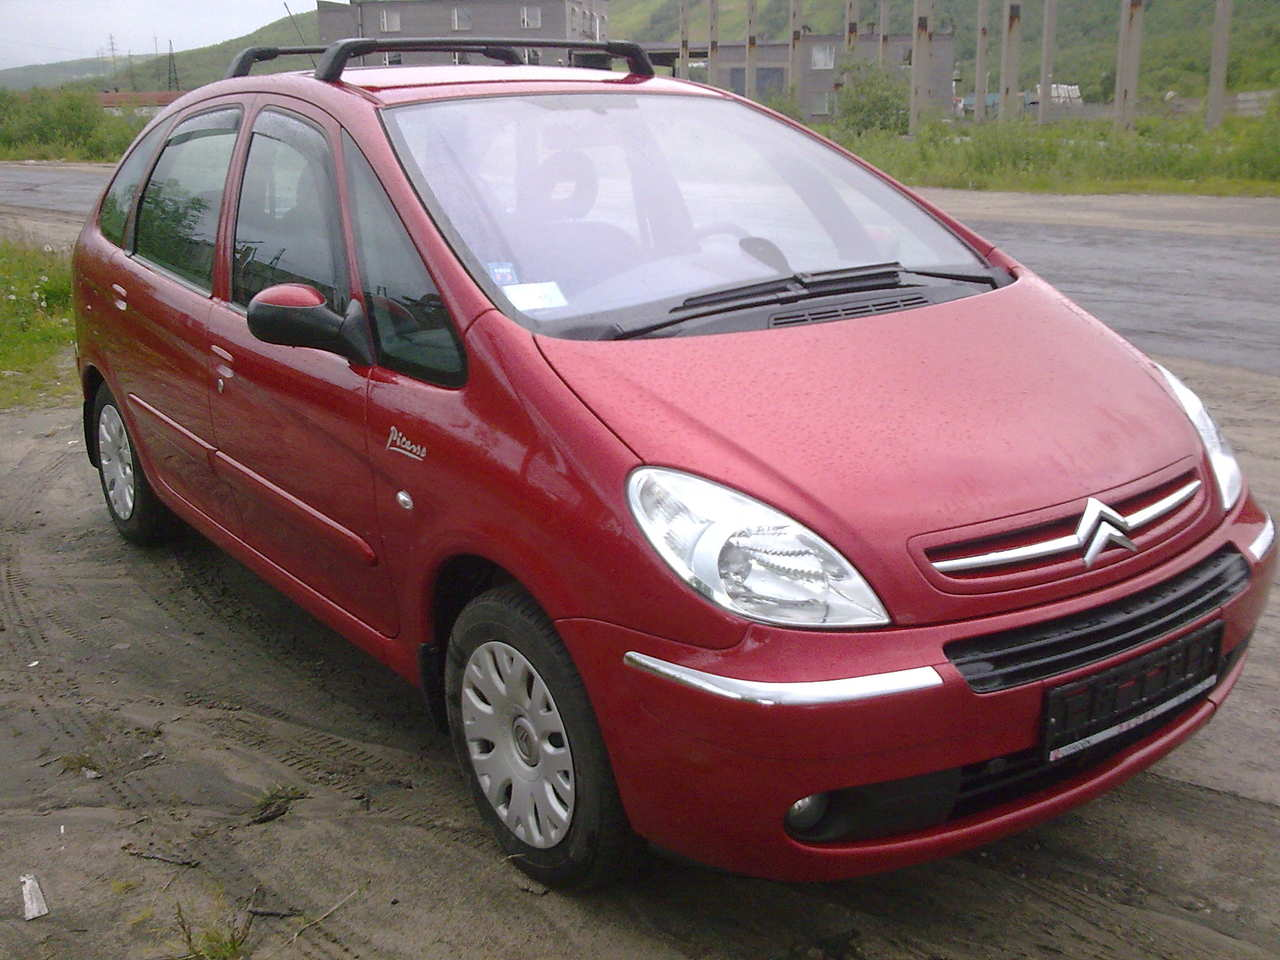 2007 citroen xsara photos 1 6 gasoline ff manual for sale. Black Bedroom Furniture Sets. Home Design Ideas